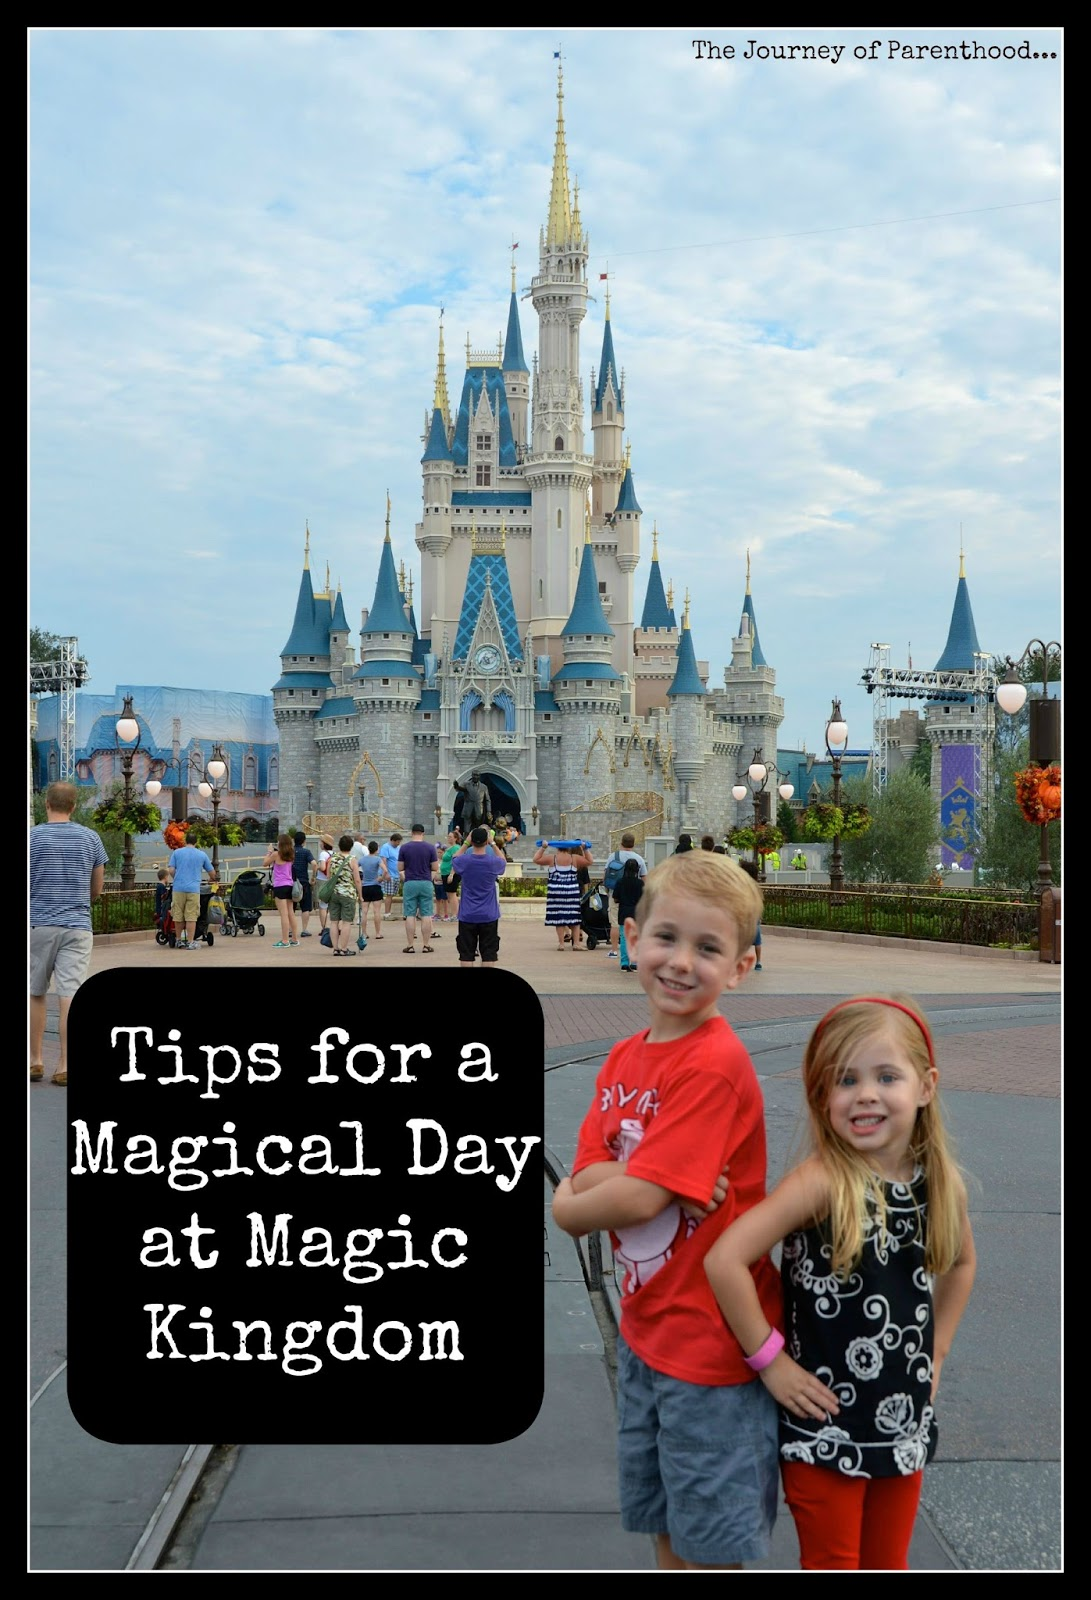 Tips for a Magical Day at Magic Kingdom